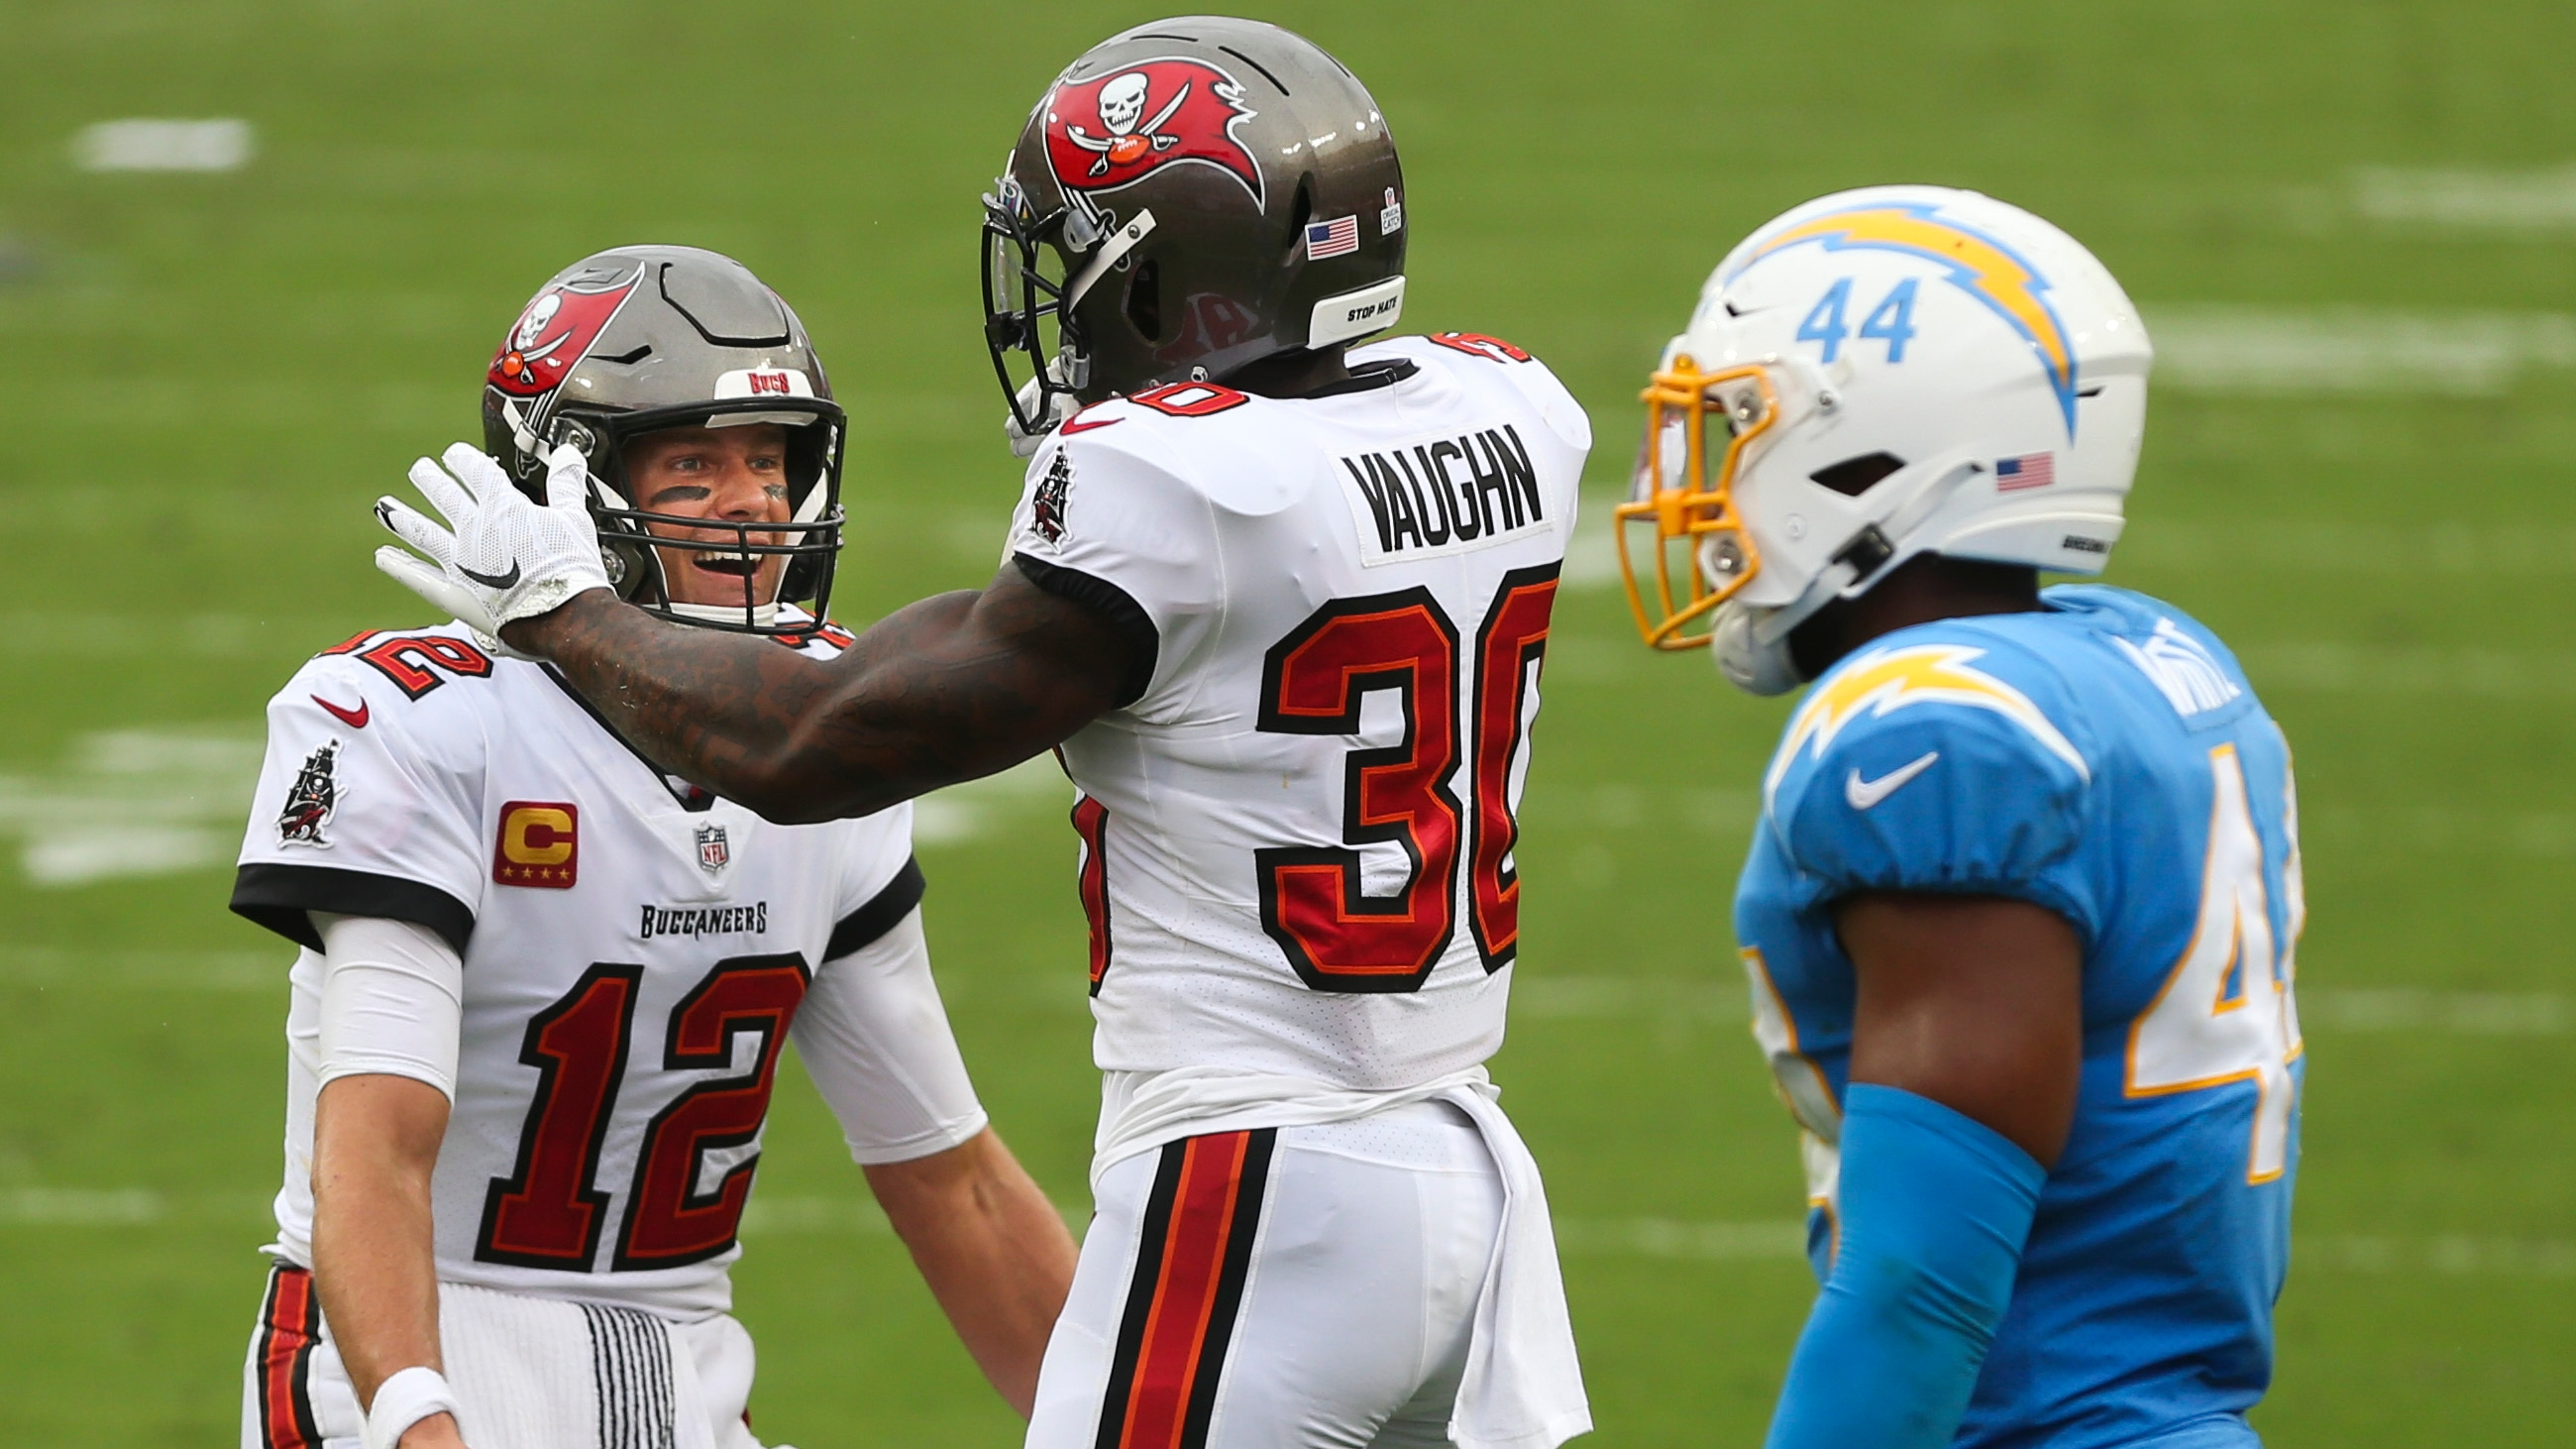 Patience pays off for Bucs rookie Ke'Shawn Vaughn